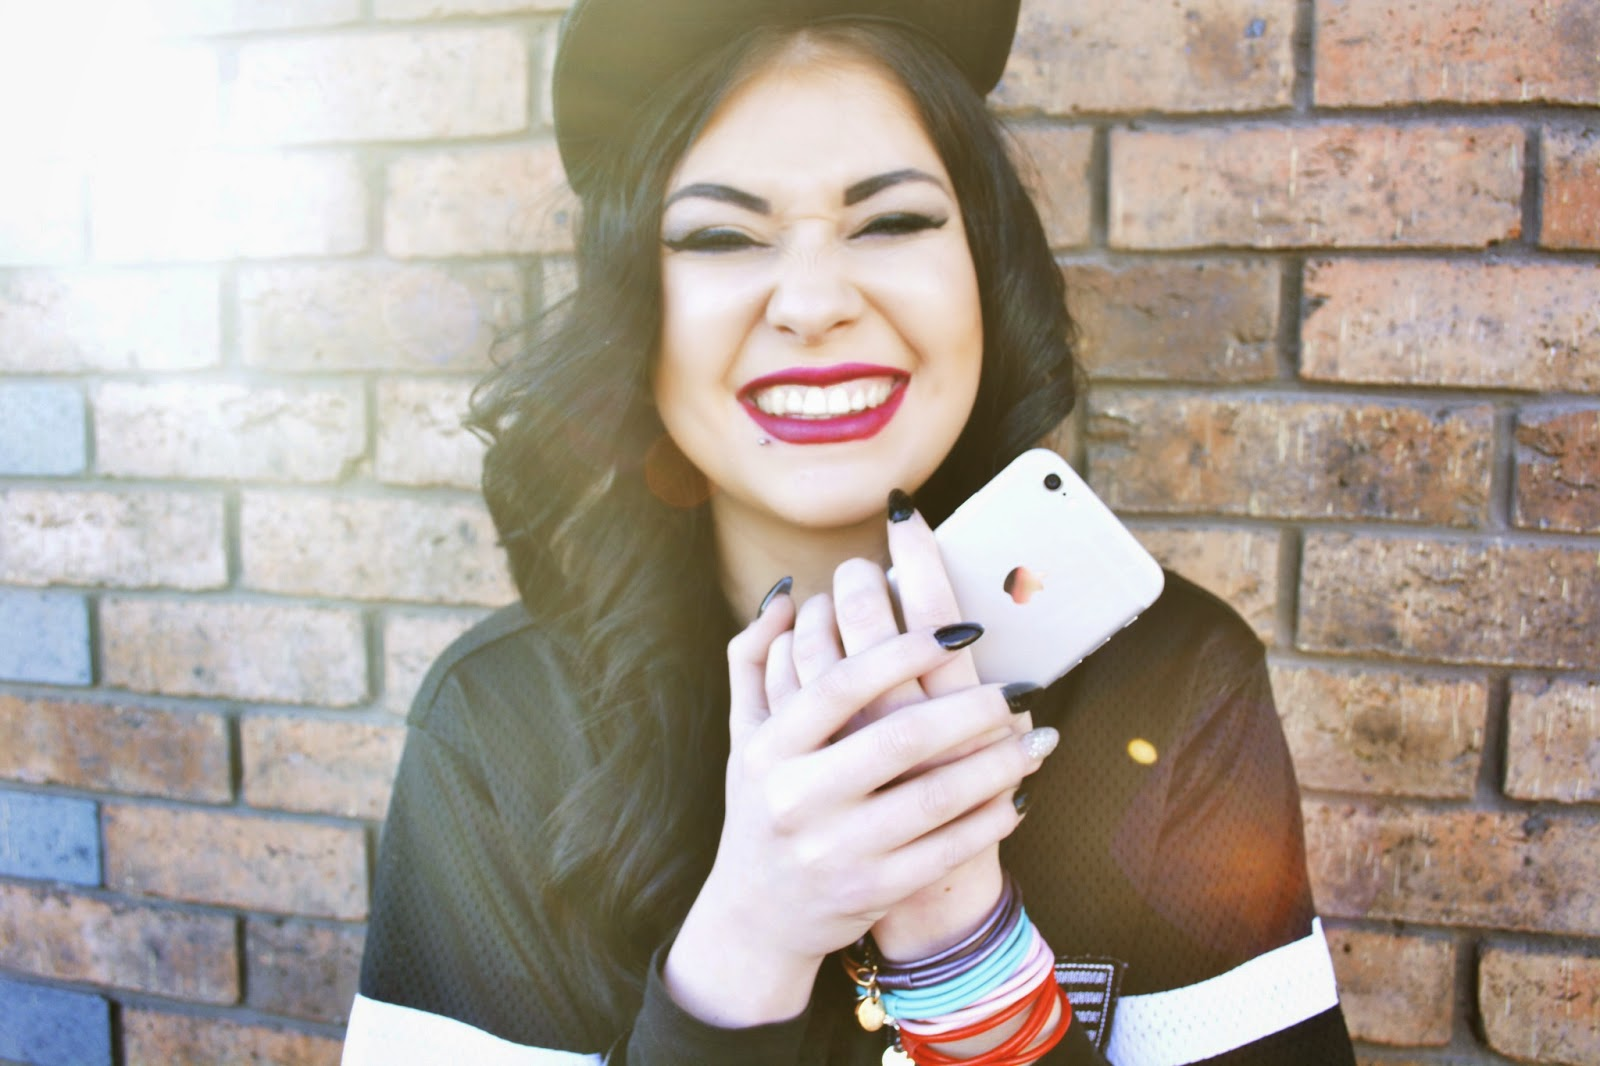 laughing girl image, black nails and red lipstick